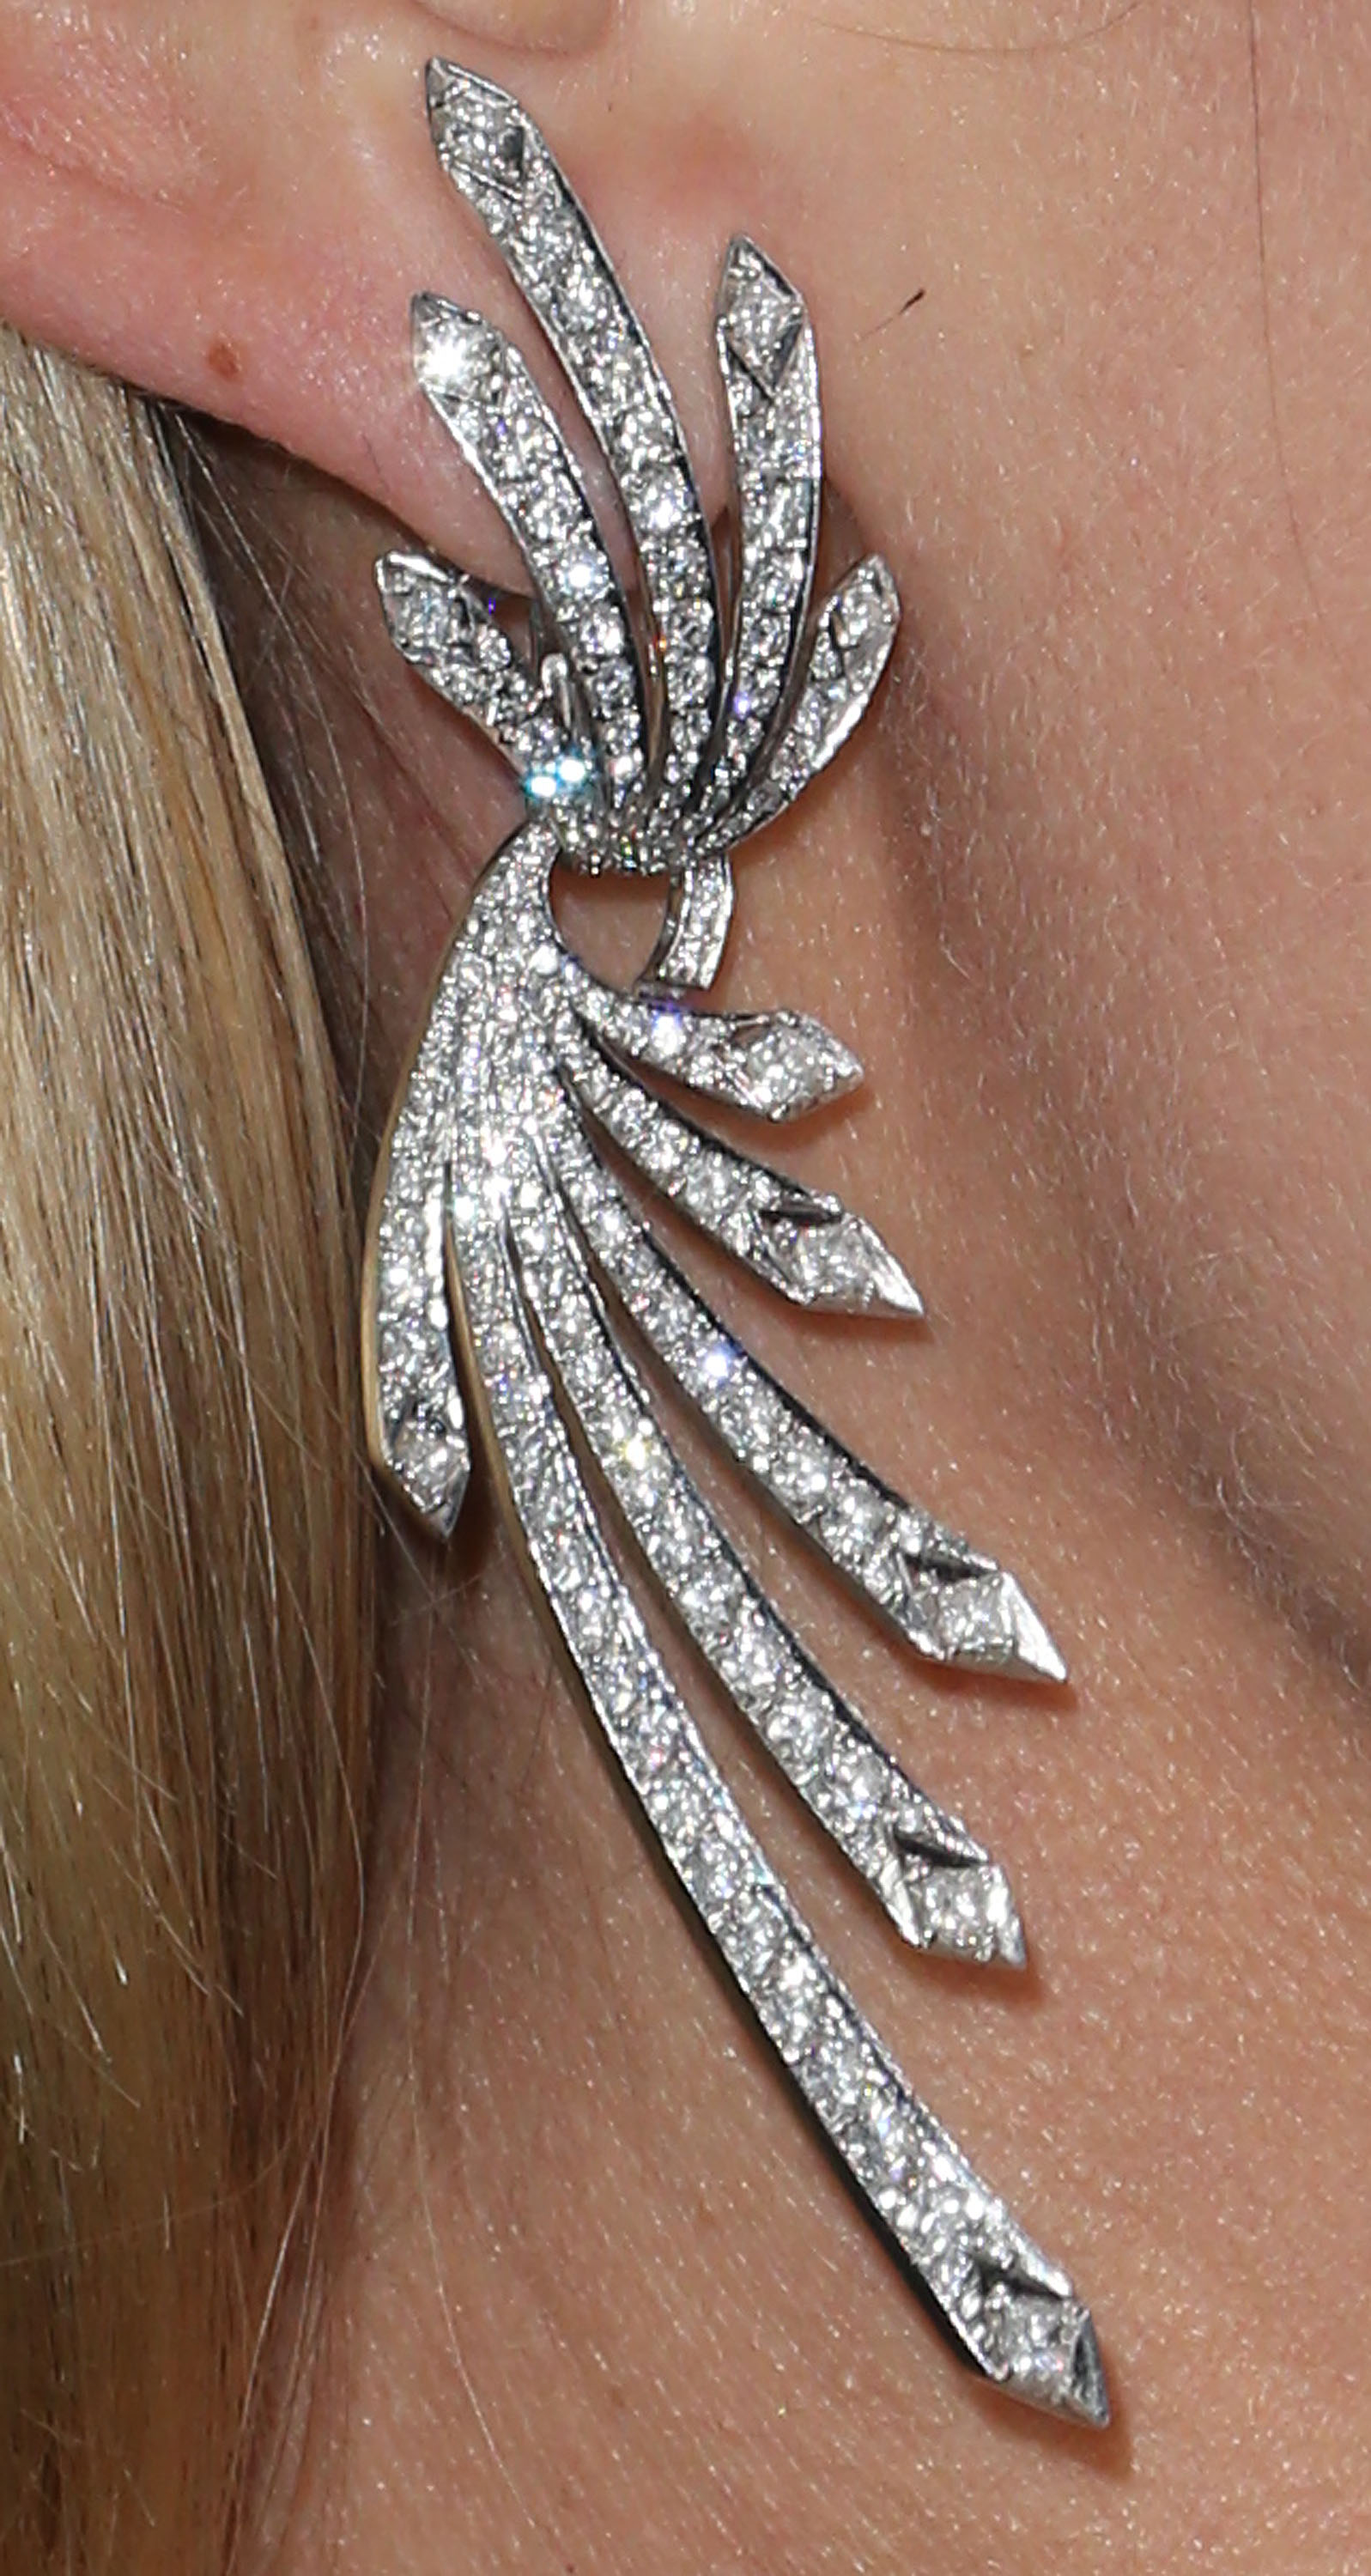 And her amazingly sparkly earrings.